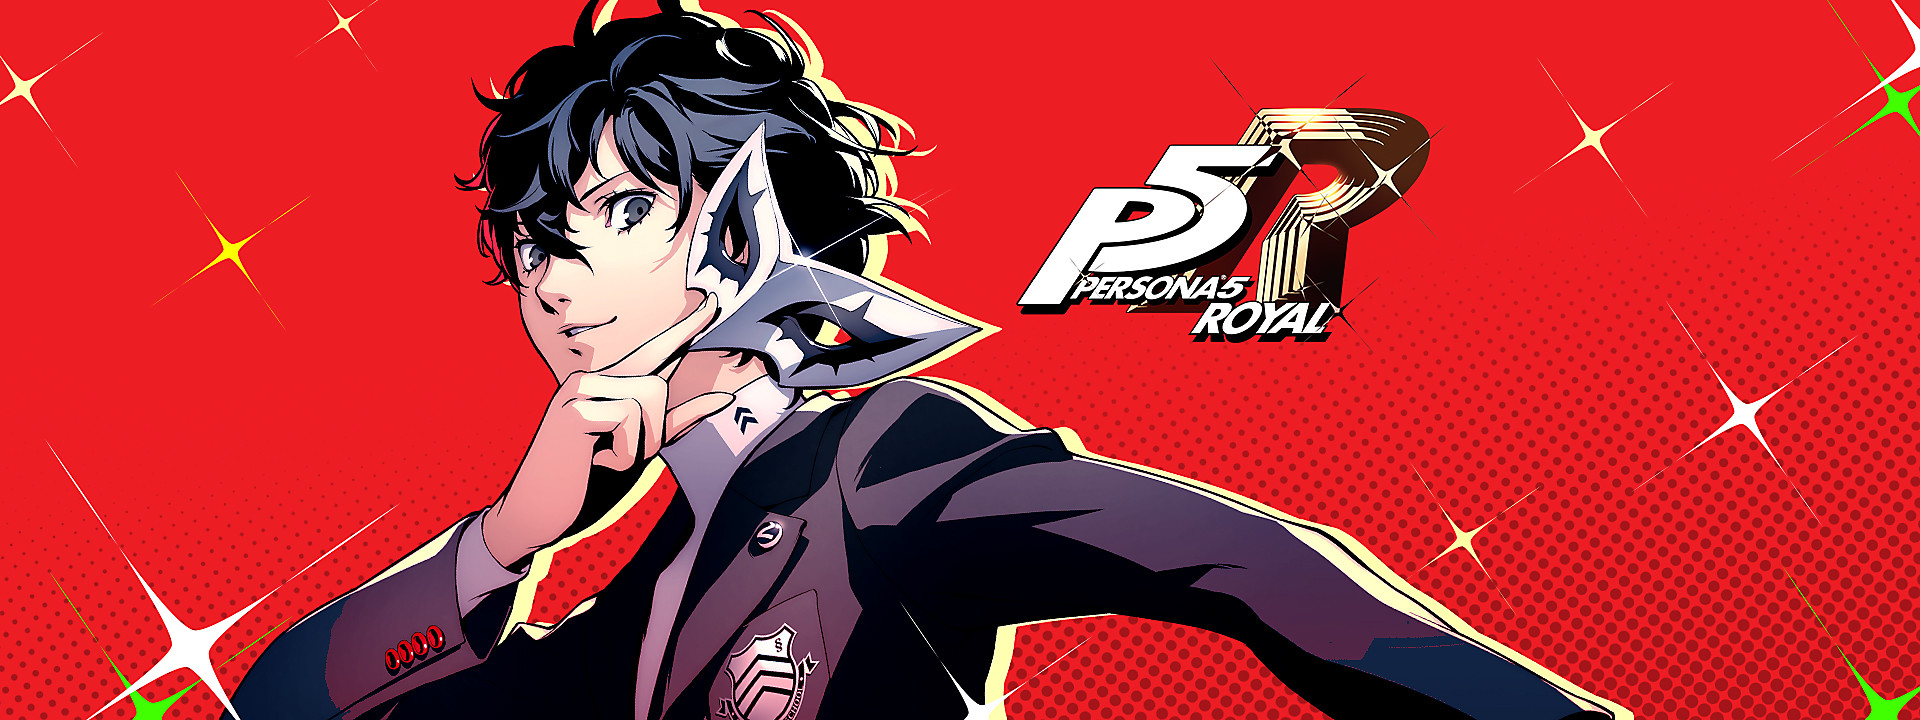 Persona 5 Royal - Now Available